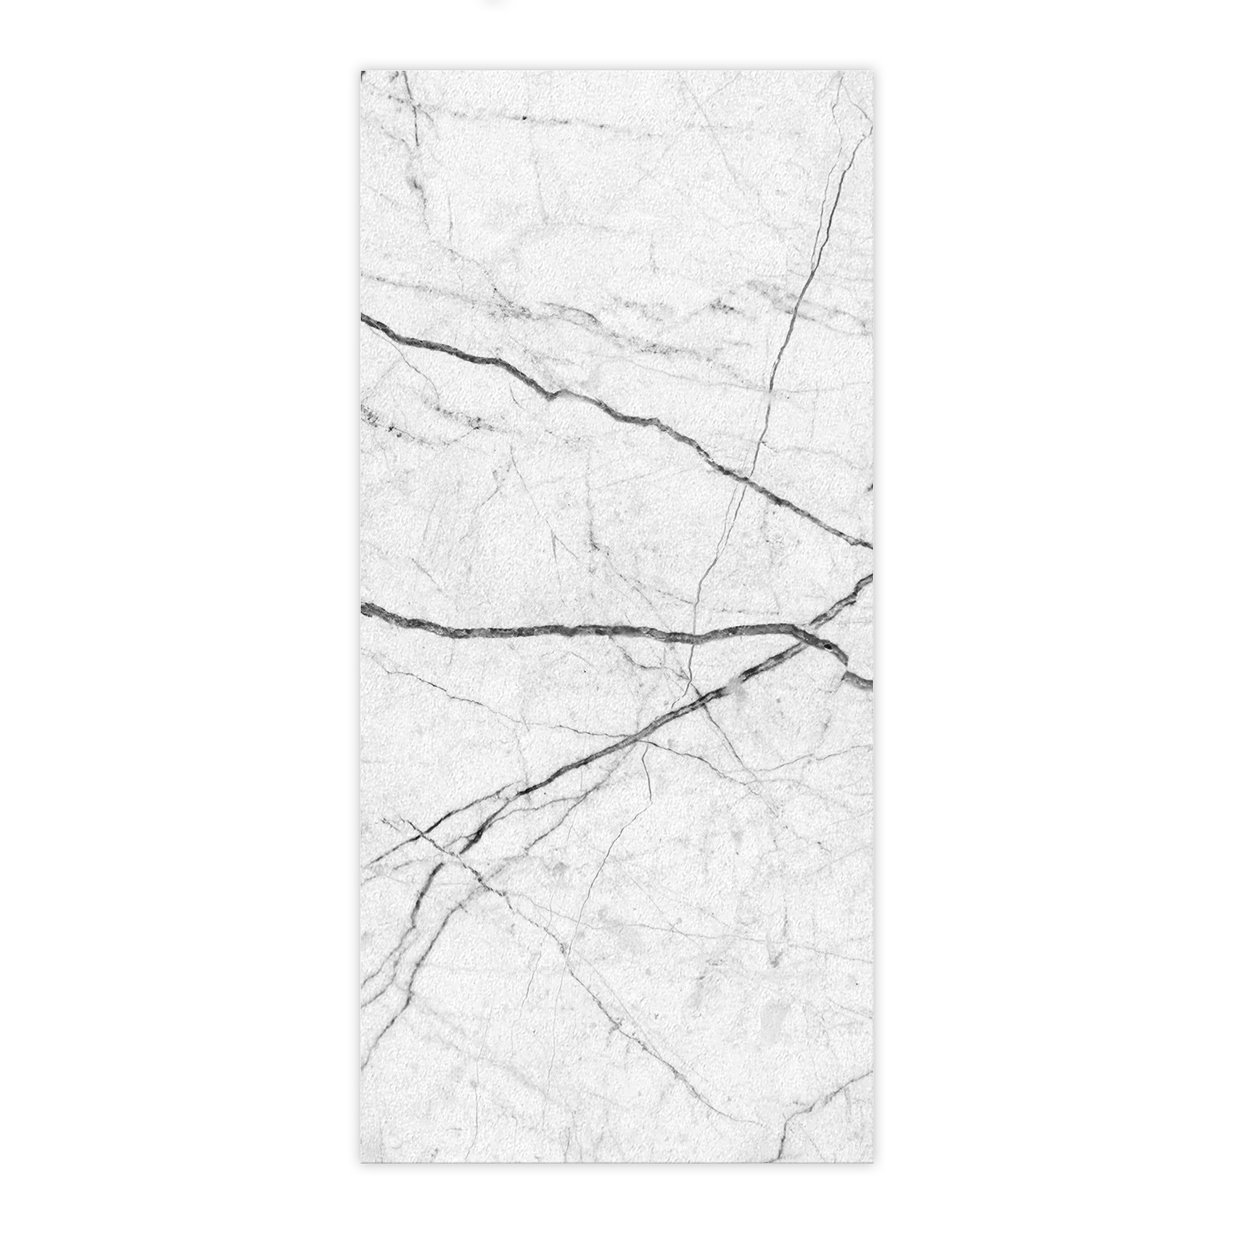 OxOHome Custom Bath Towel Quick Dry Absorbent Towels Spa Shower Wrap for College Dorms, Gyms, Locker Rooms, 27.5 x 55 inch - Modern Veined Marble